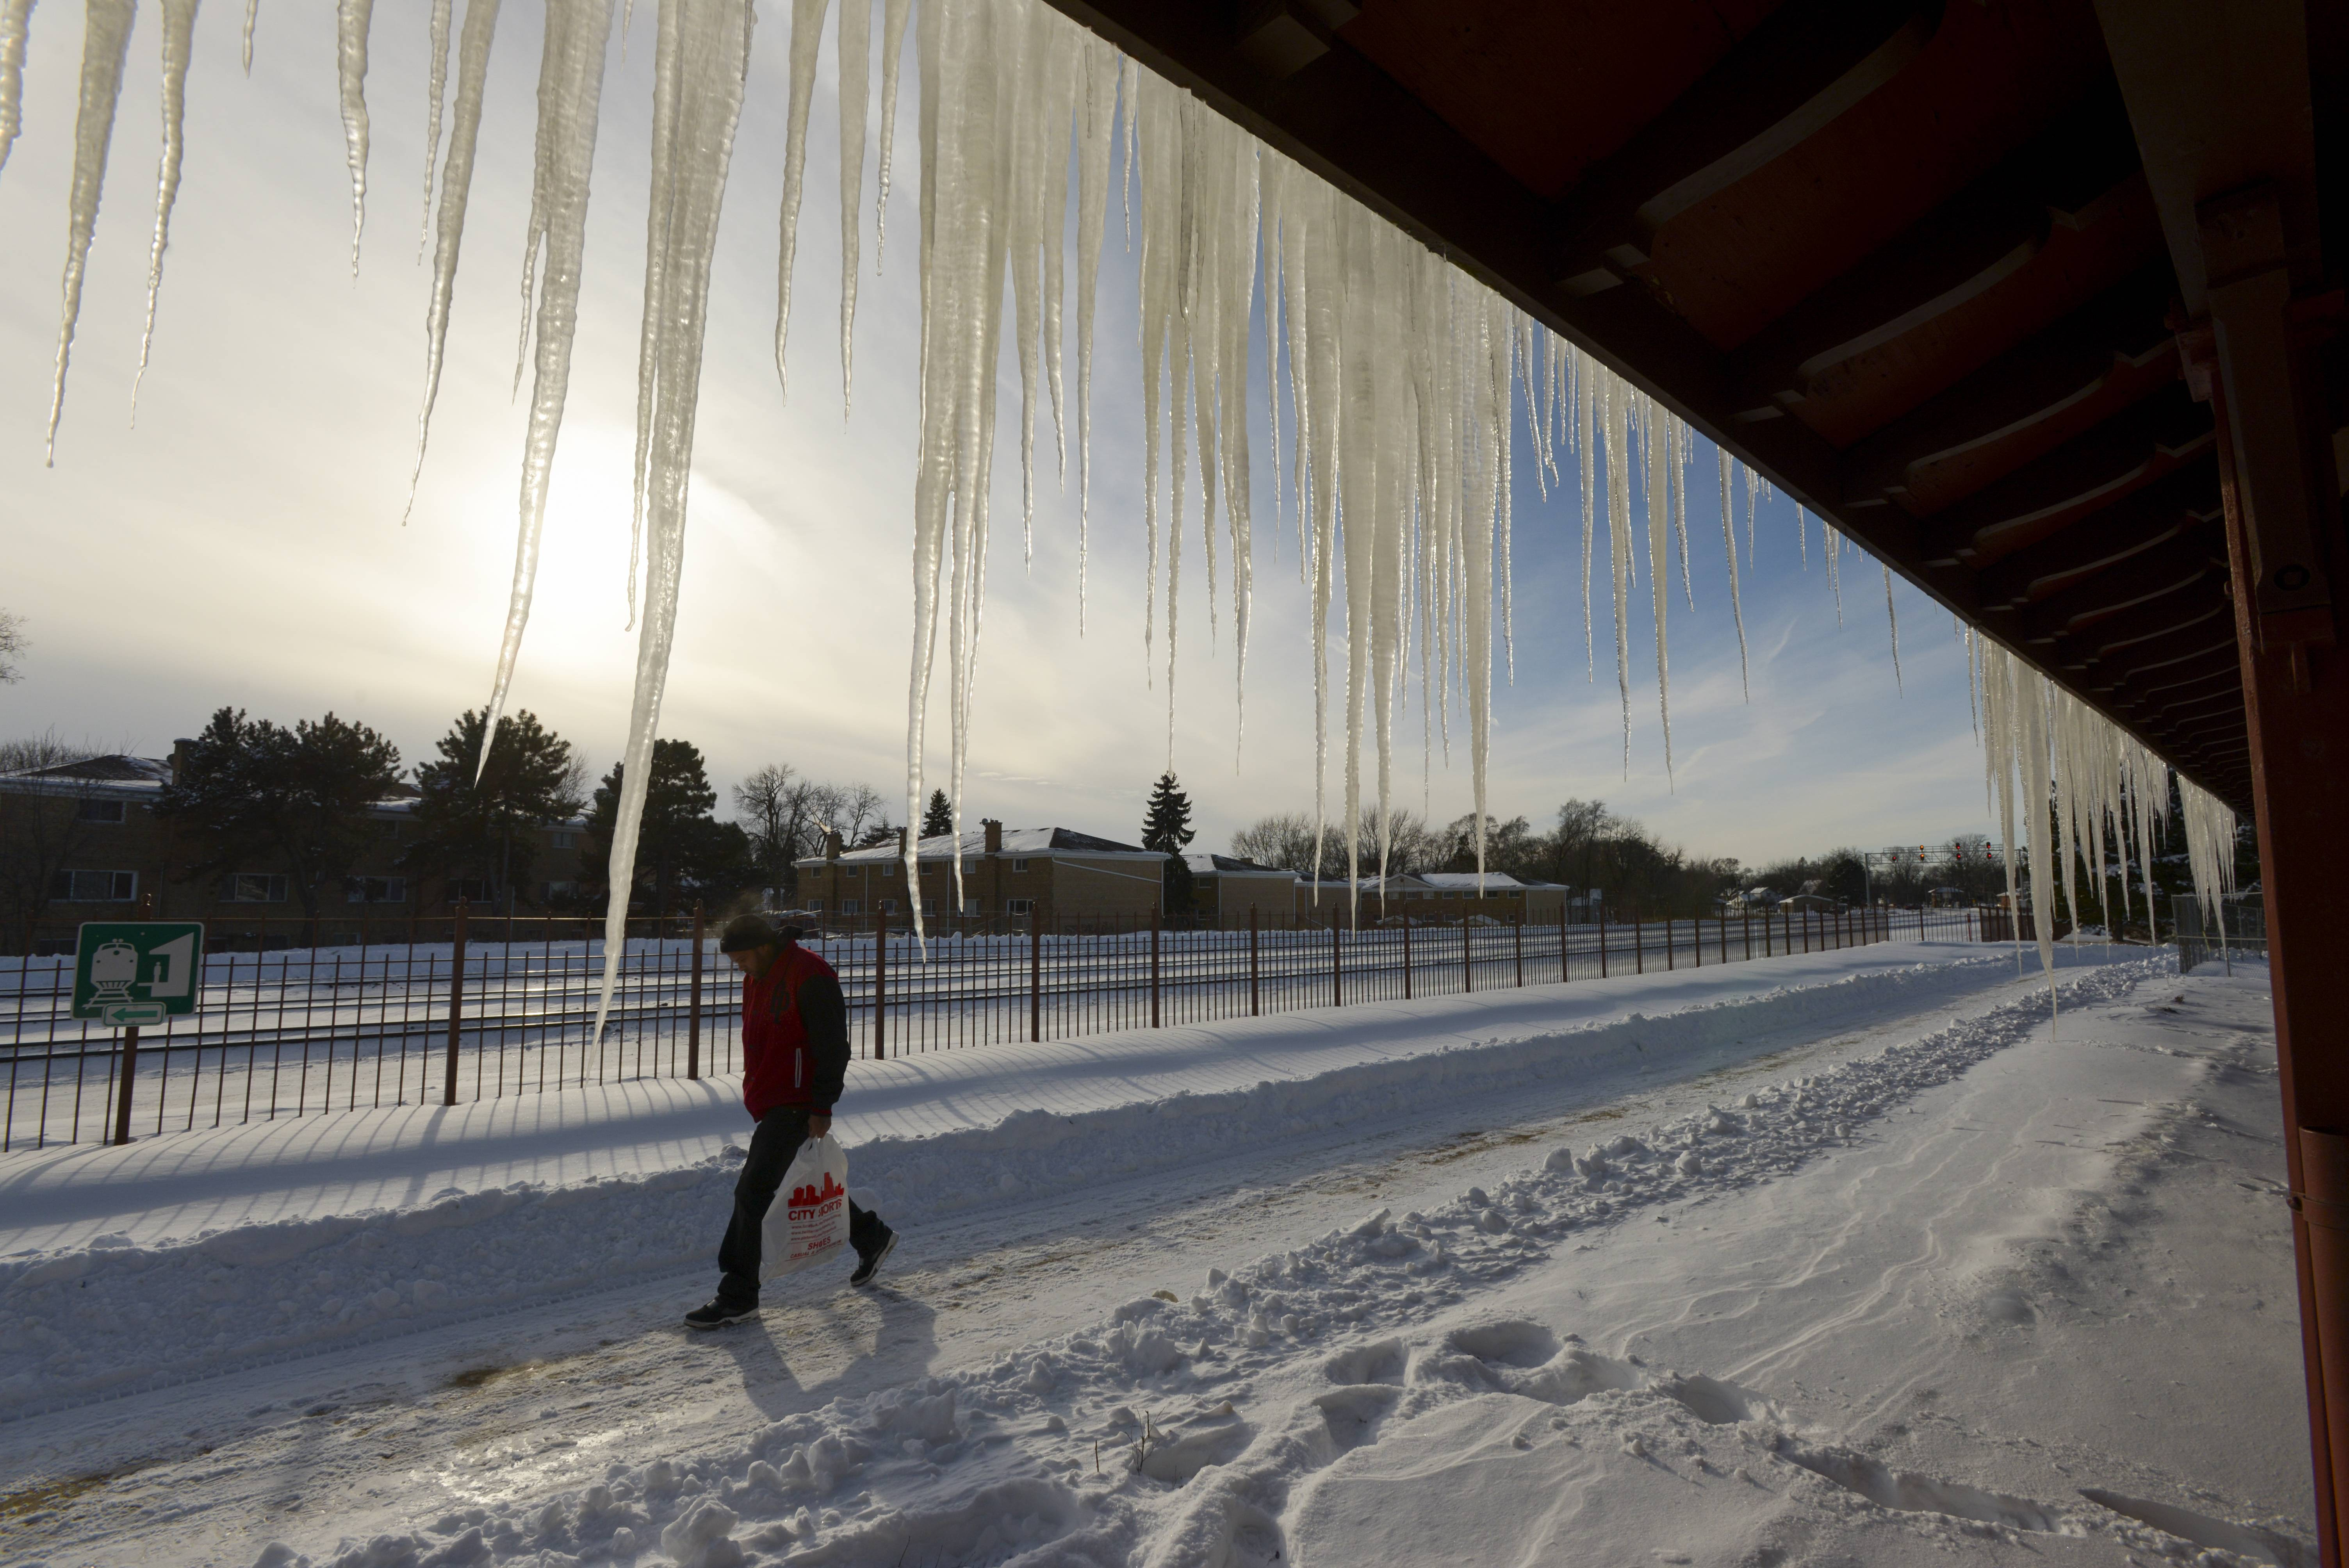 A pedestrian walks past the large Icicles hanging from the roof of the Wayne and Helen Fox Community Center in West Chicago.